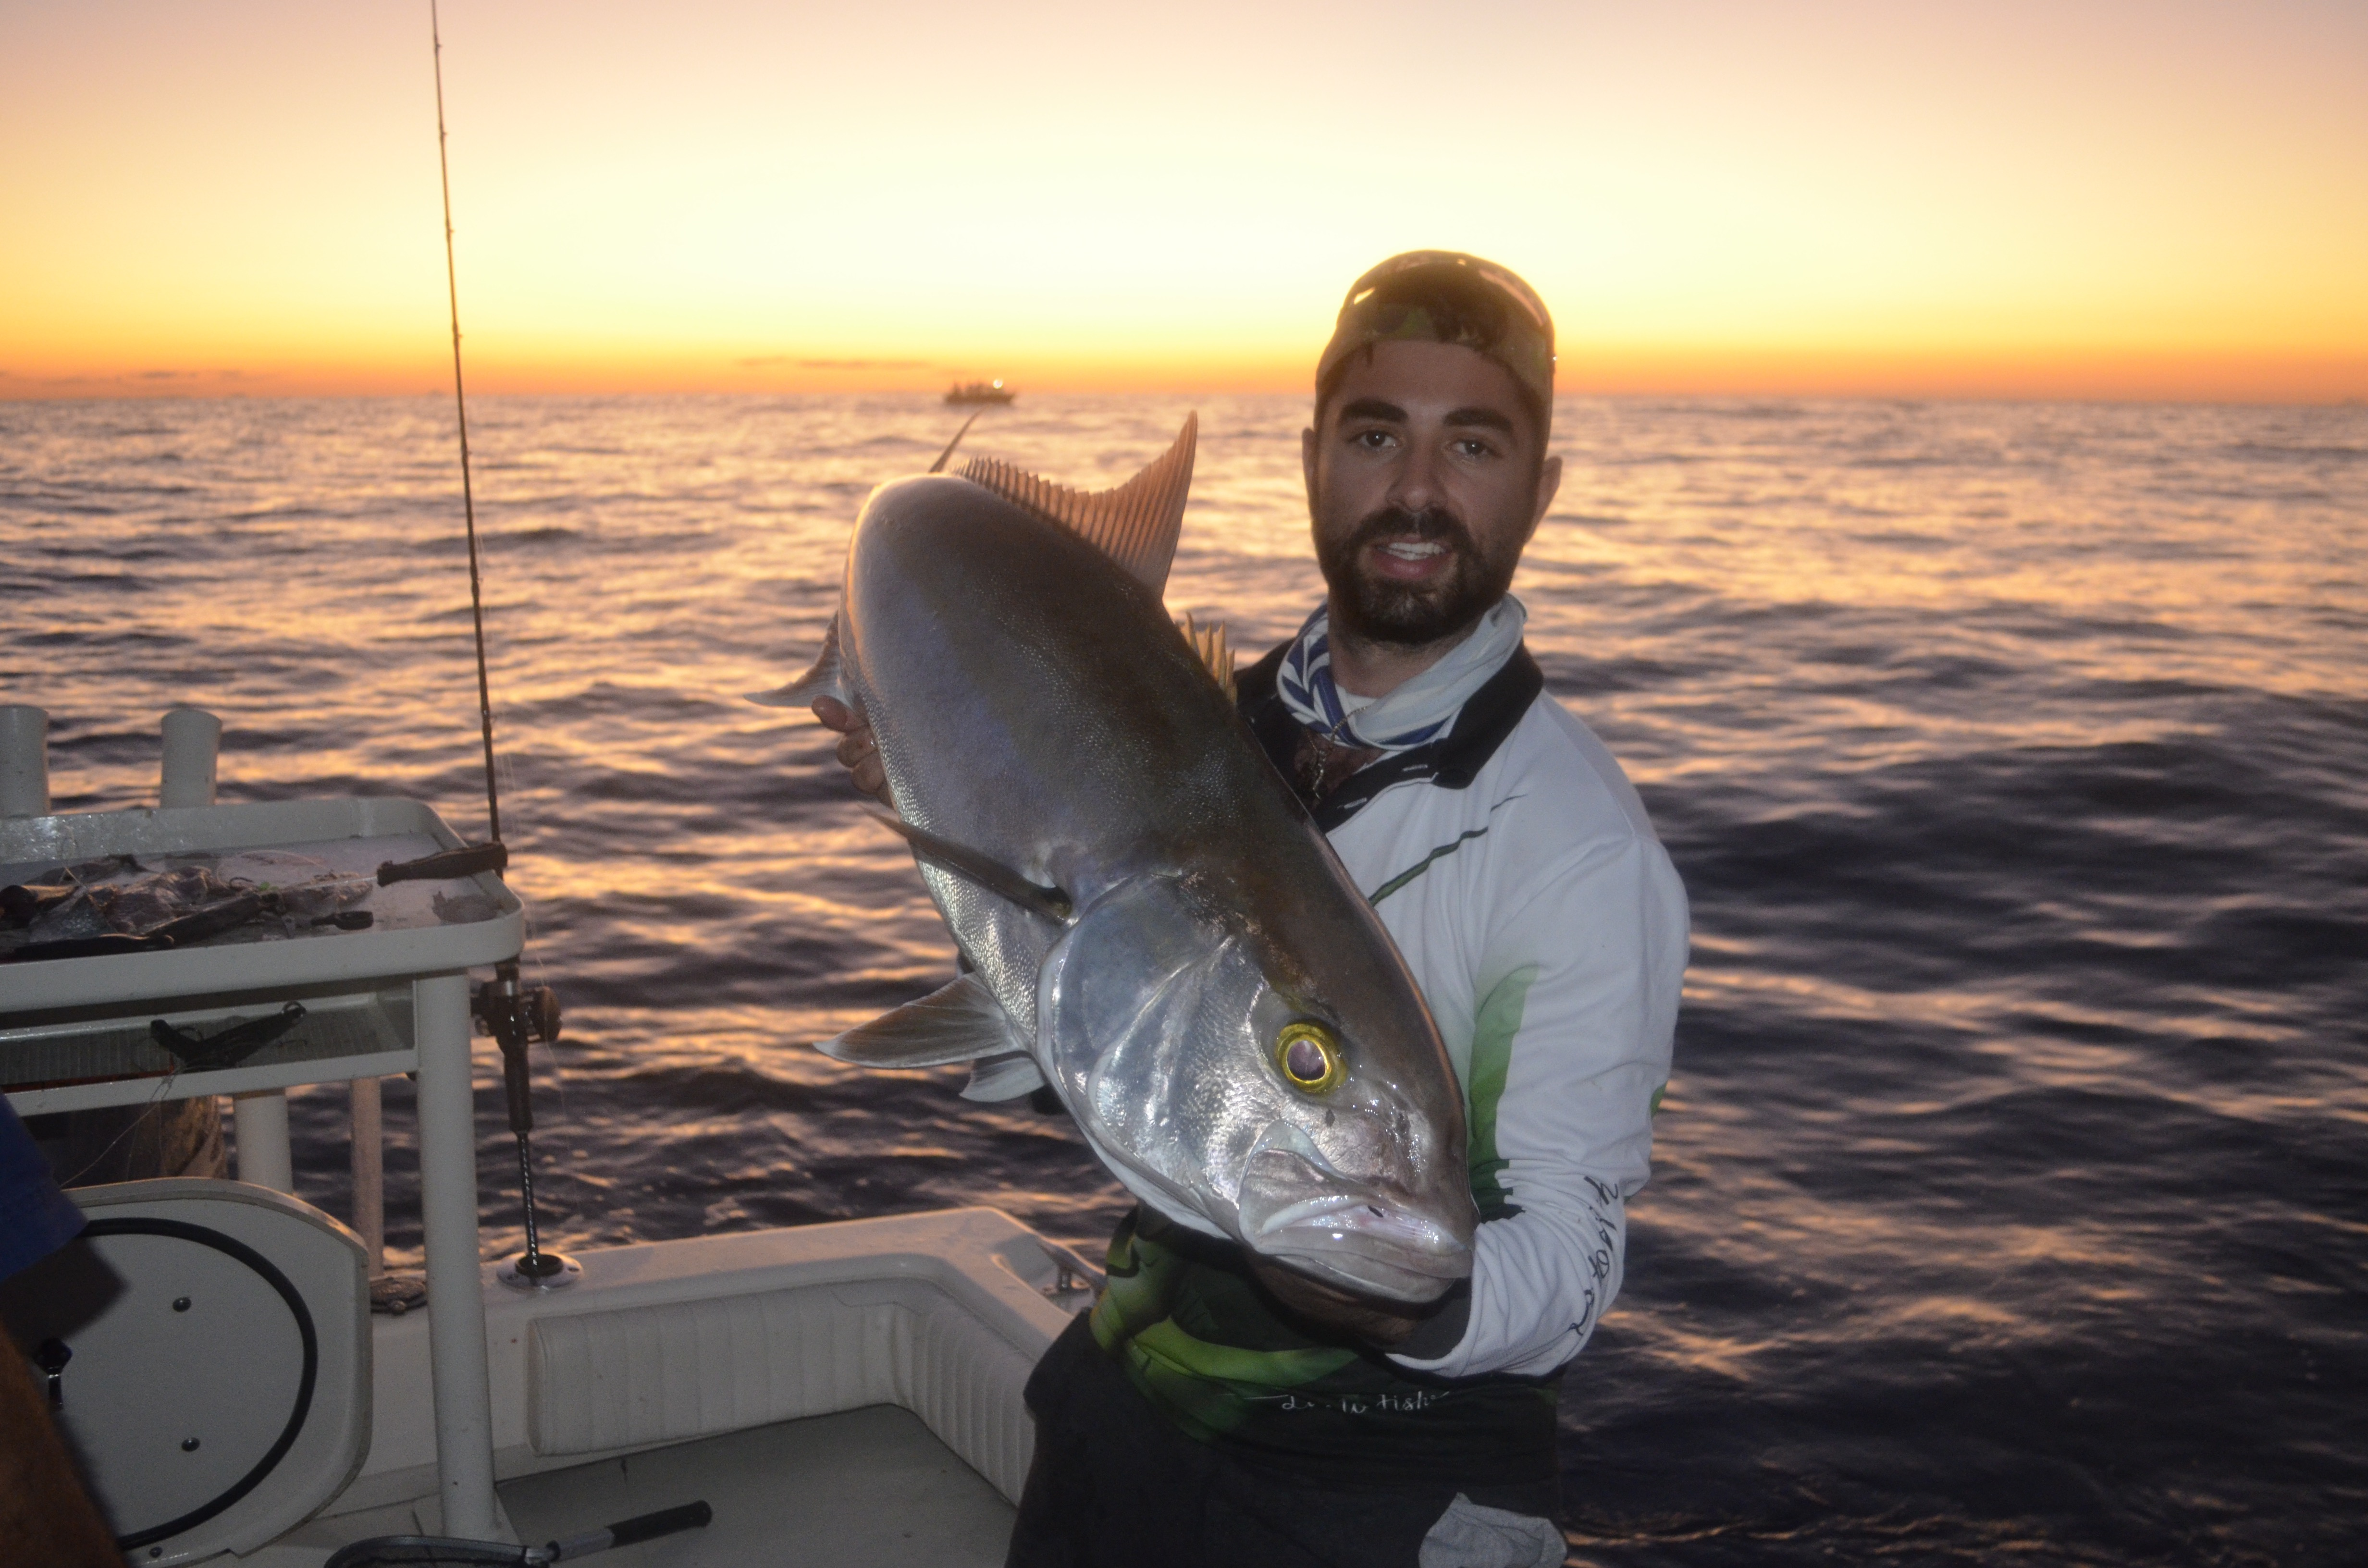 This 15kg amberjack landed by Peter was by-catch while chasing snapper.